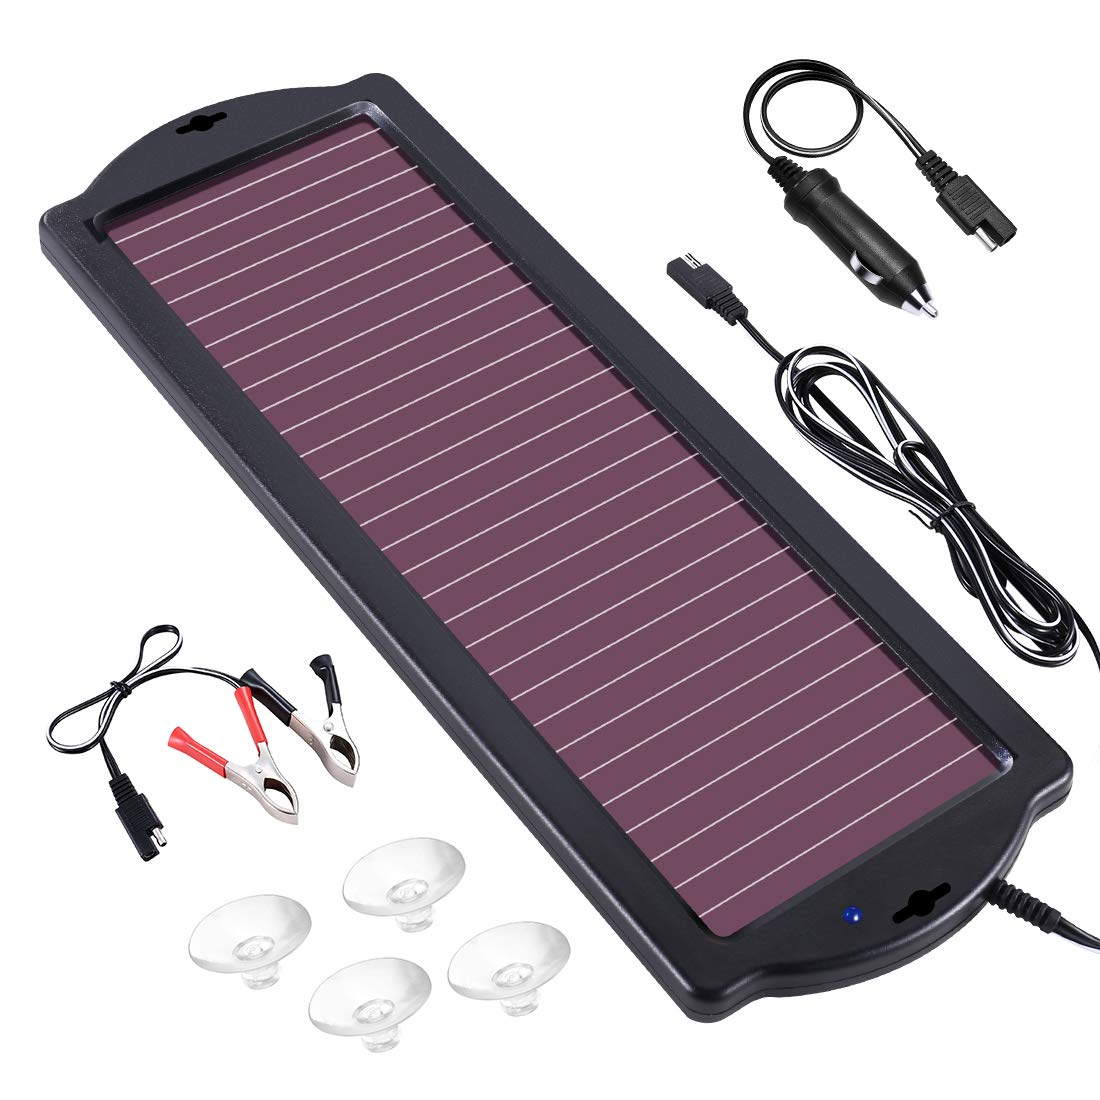 POWOXI 1.8W 12V Solar Trickle Charger for Car Battery, Portable and Waterproof, High Conversion Single Crystal Silicon Solar Panel car Battery Charger for Motorcycle Boat by POWOXI